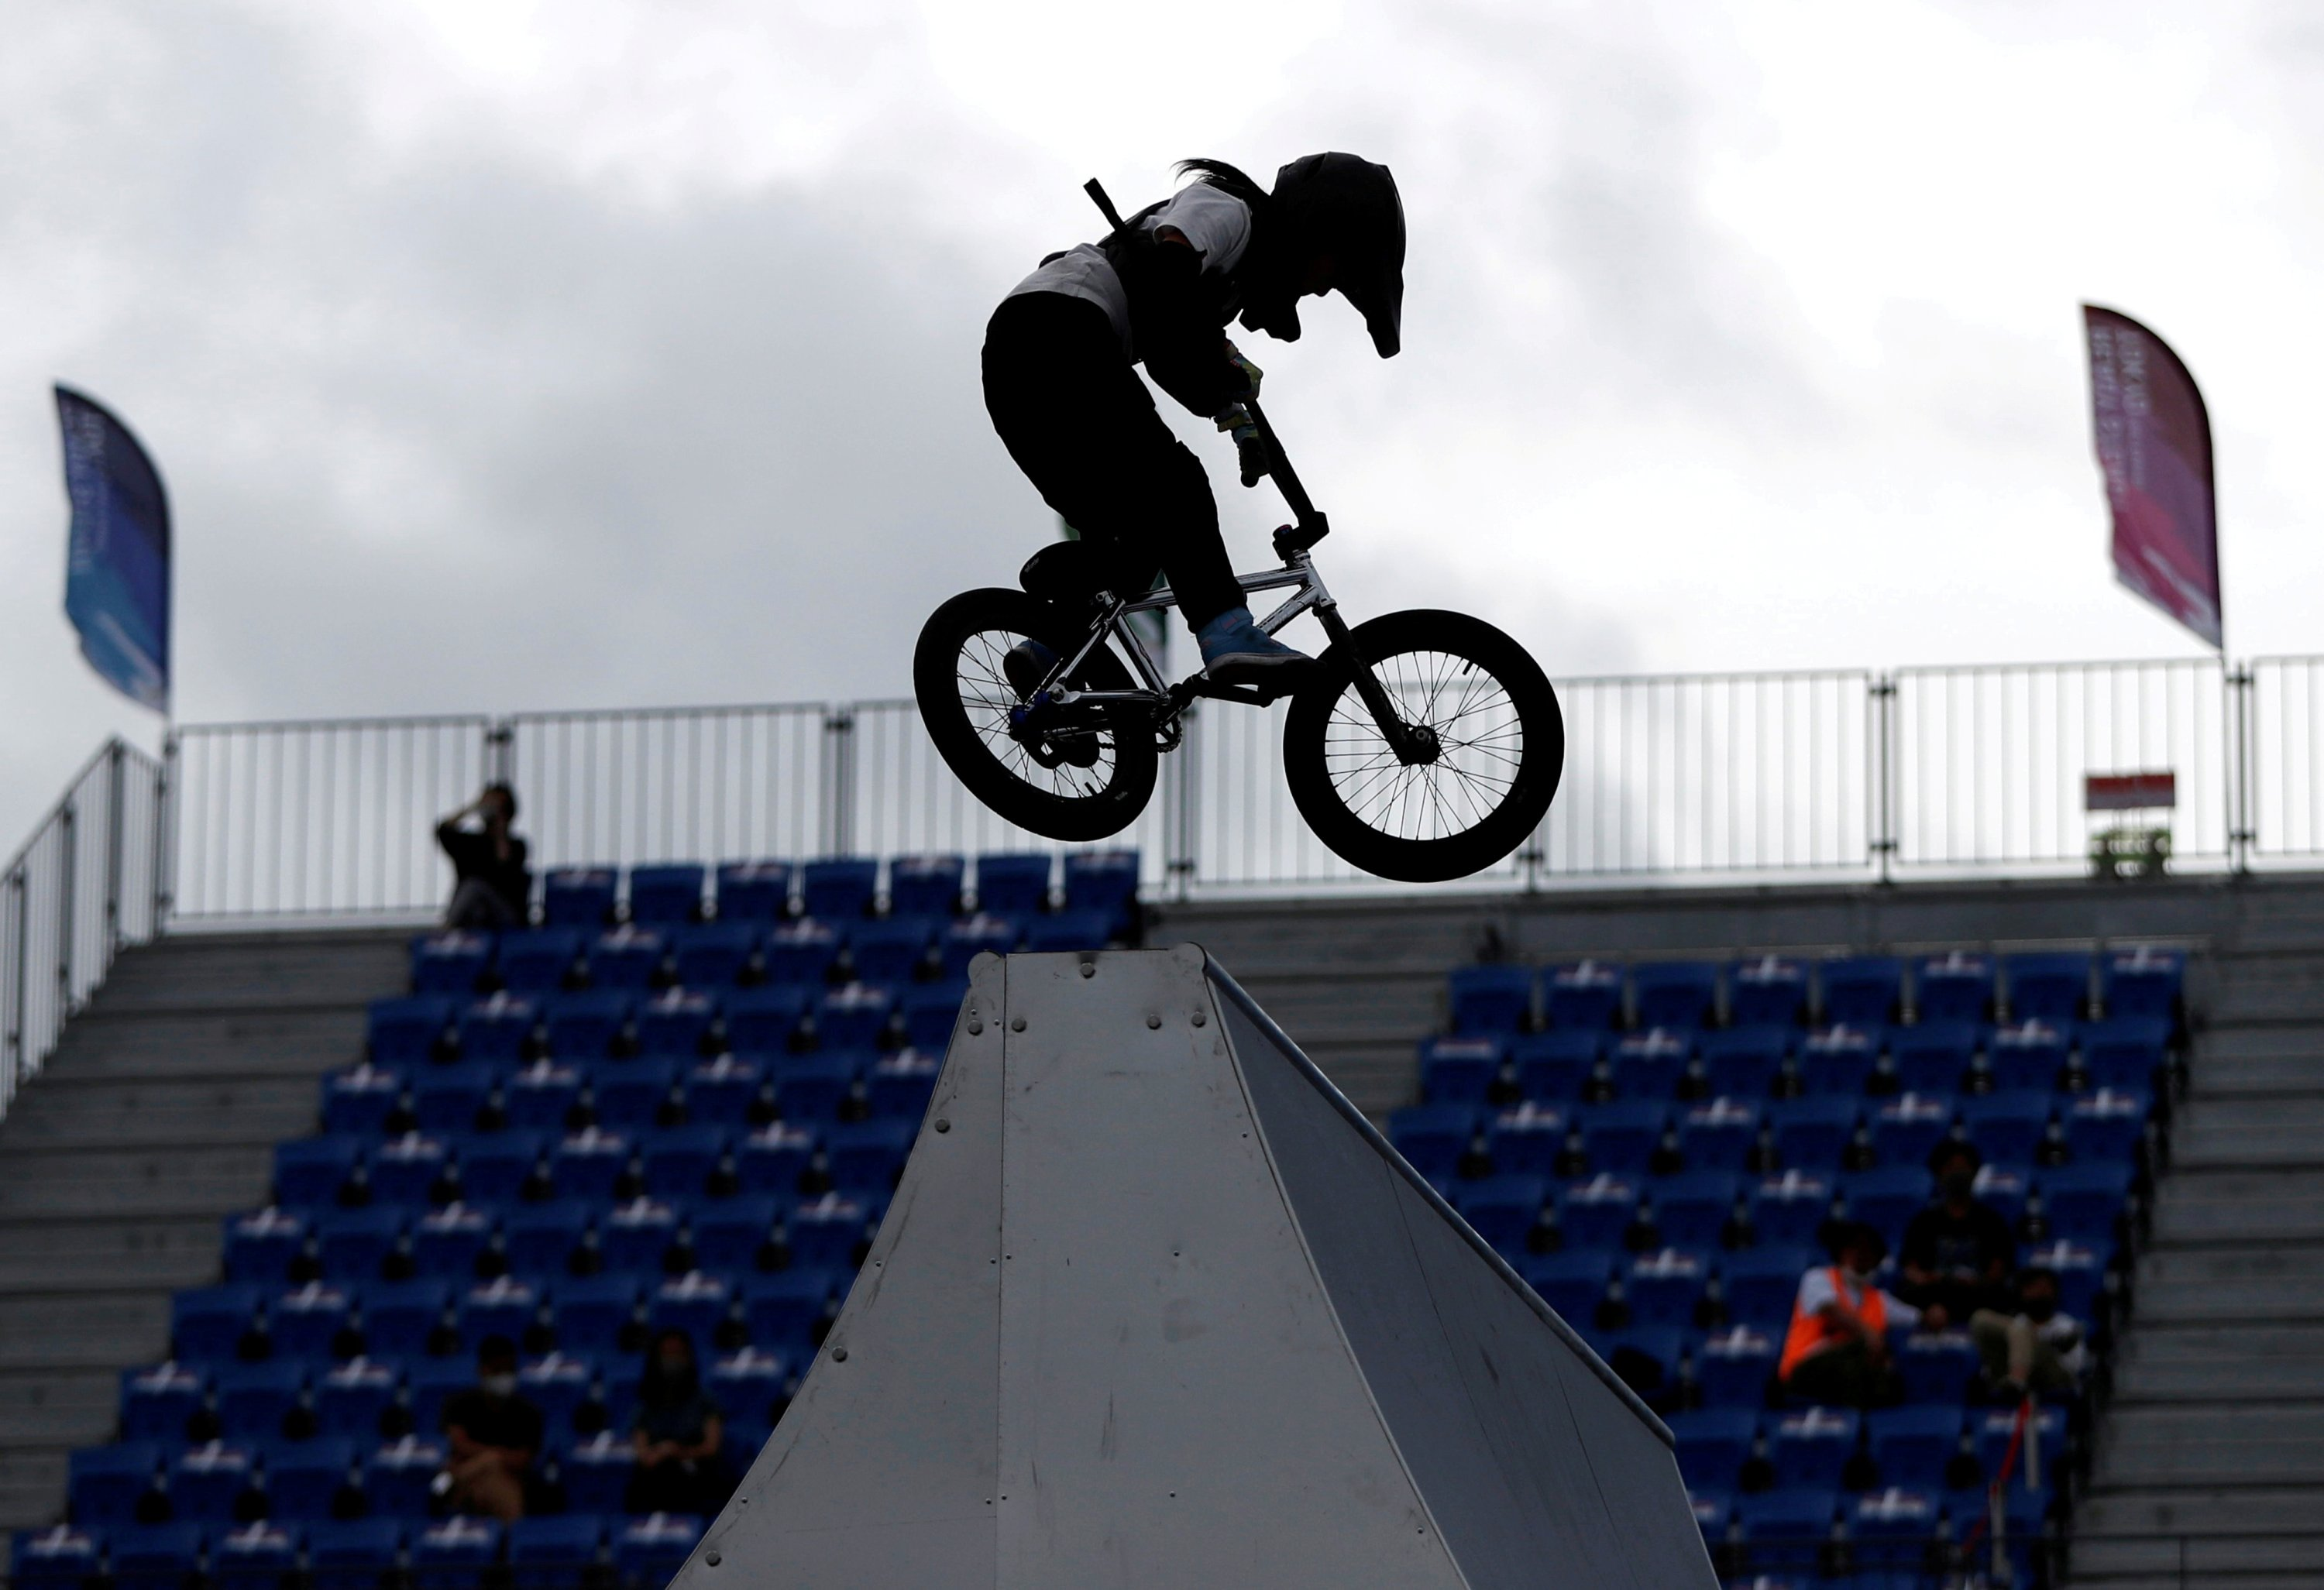 Japan's Miharu Ozawa competes during a women's seeding run event at the Tokyo 2020 Olympics Cycling BMX test event at Ariake Urban Sports Park in Tokyo, Japan, May 17, 2021. (Reuters Photo)